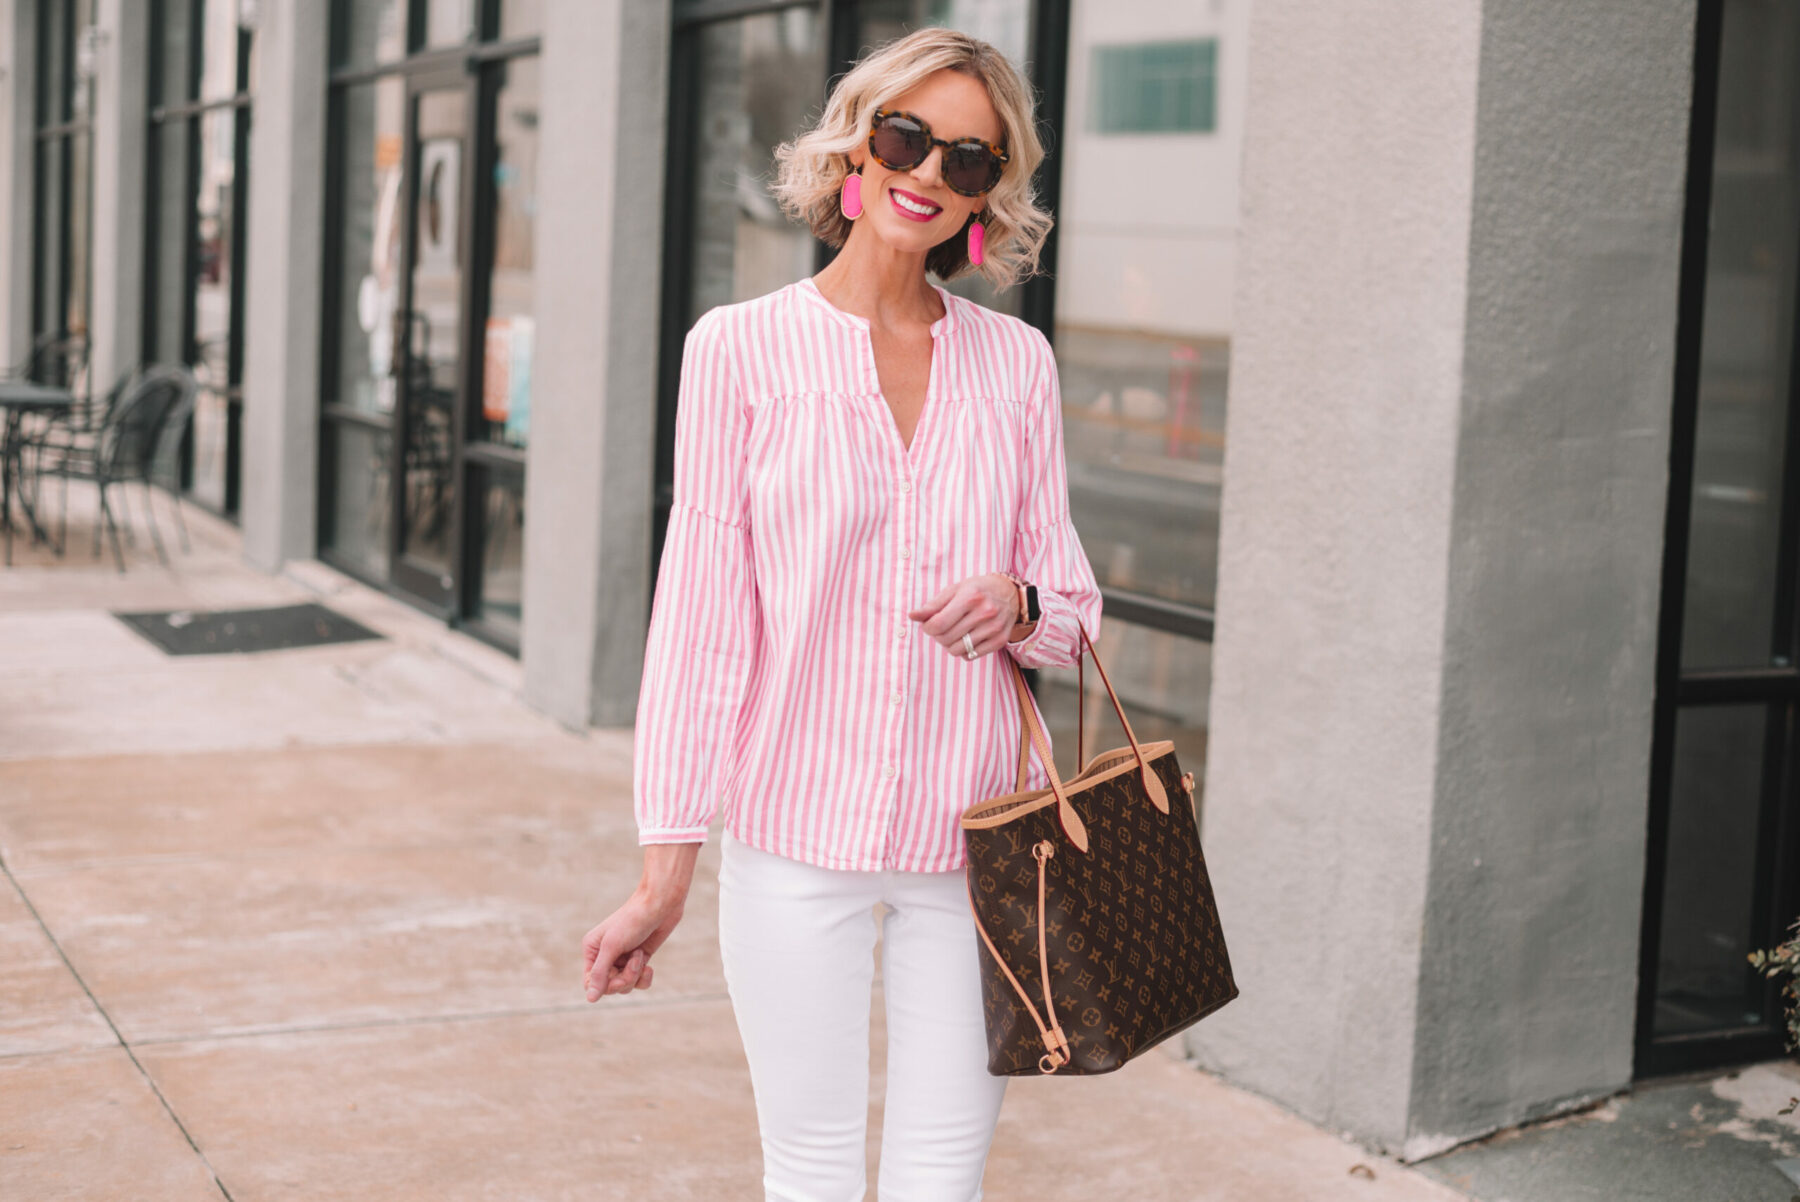 2f1f78a48 How to Transition Your Wardrobe from Winter to Spring – Brighter Colors